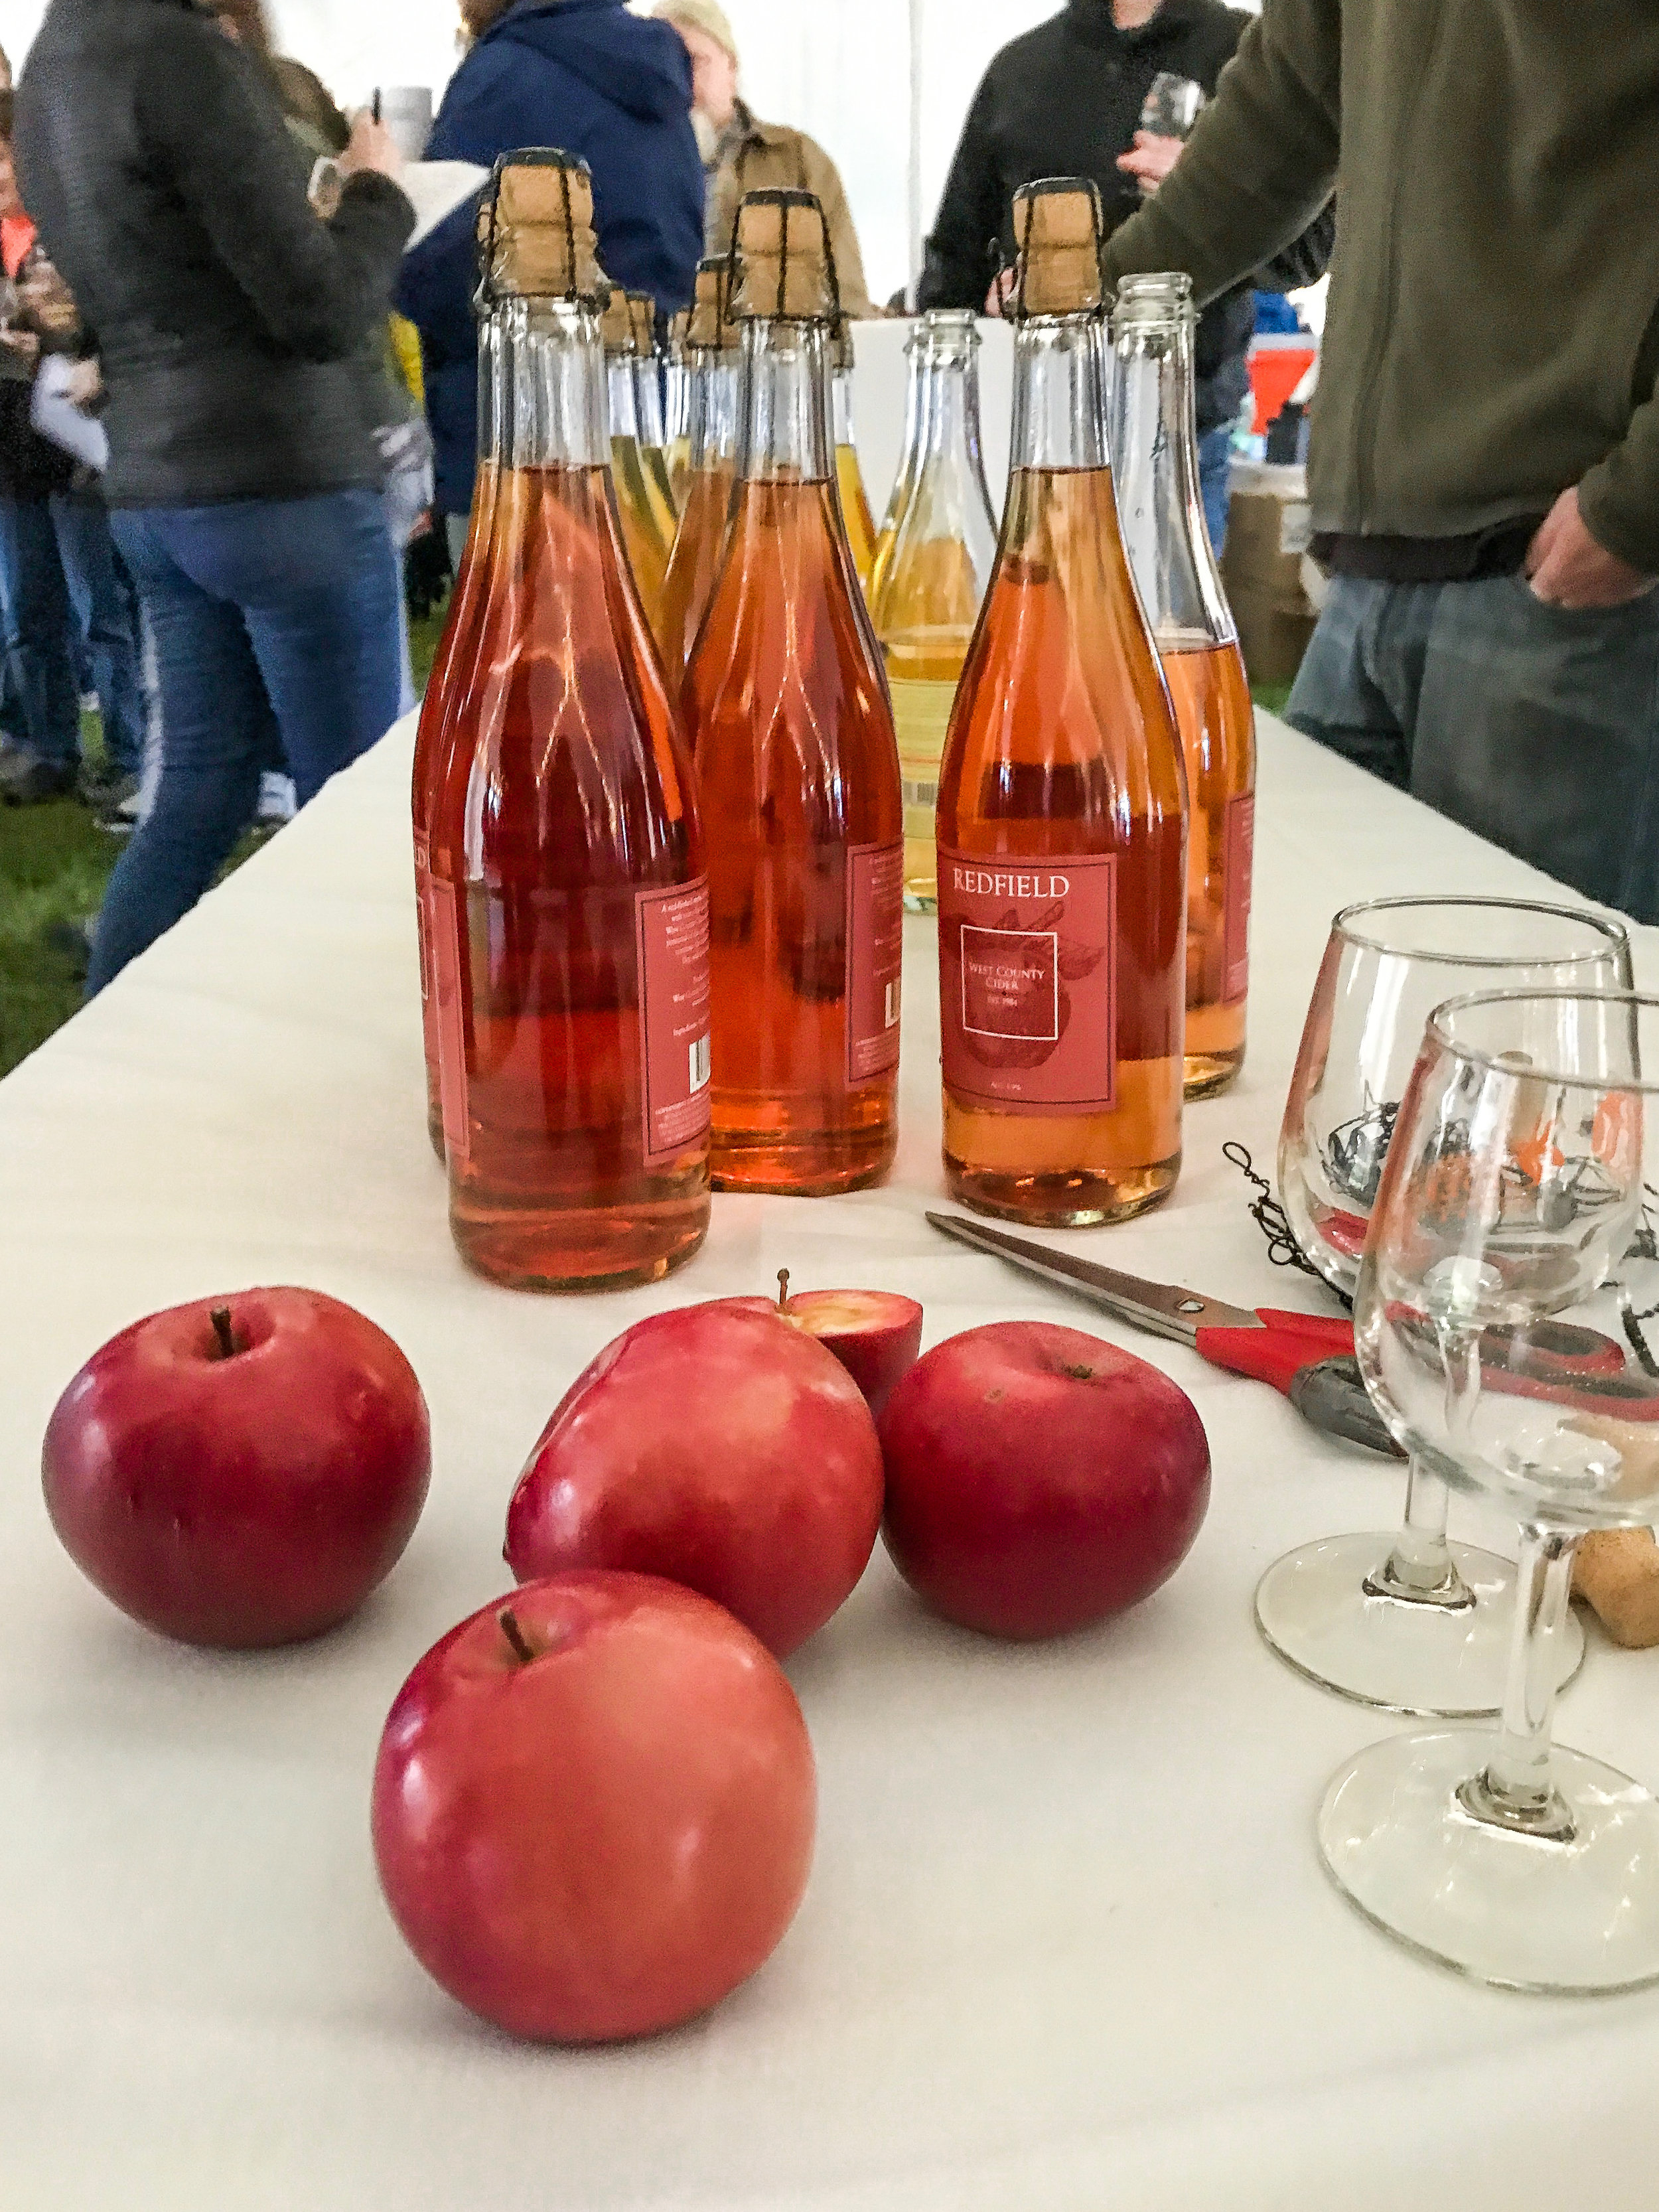 West County Cider's Redfield cider